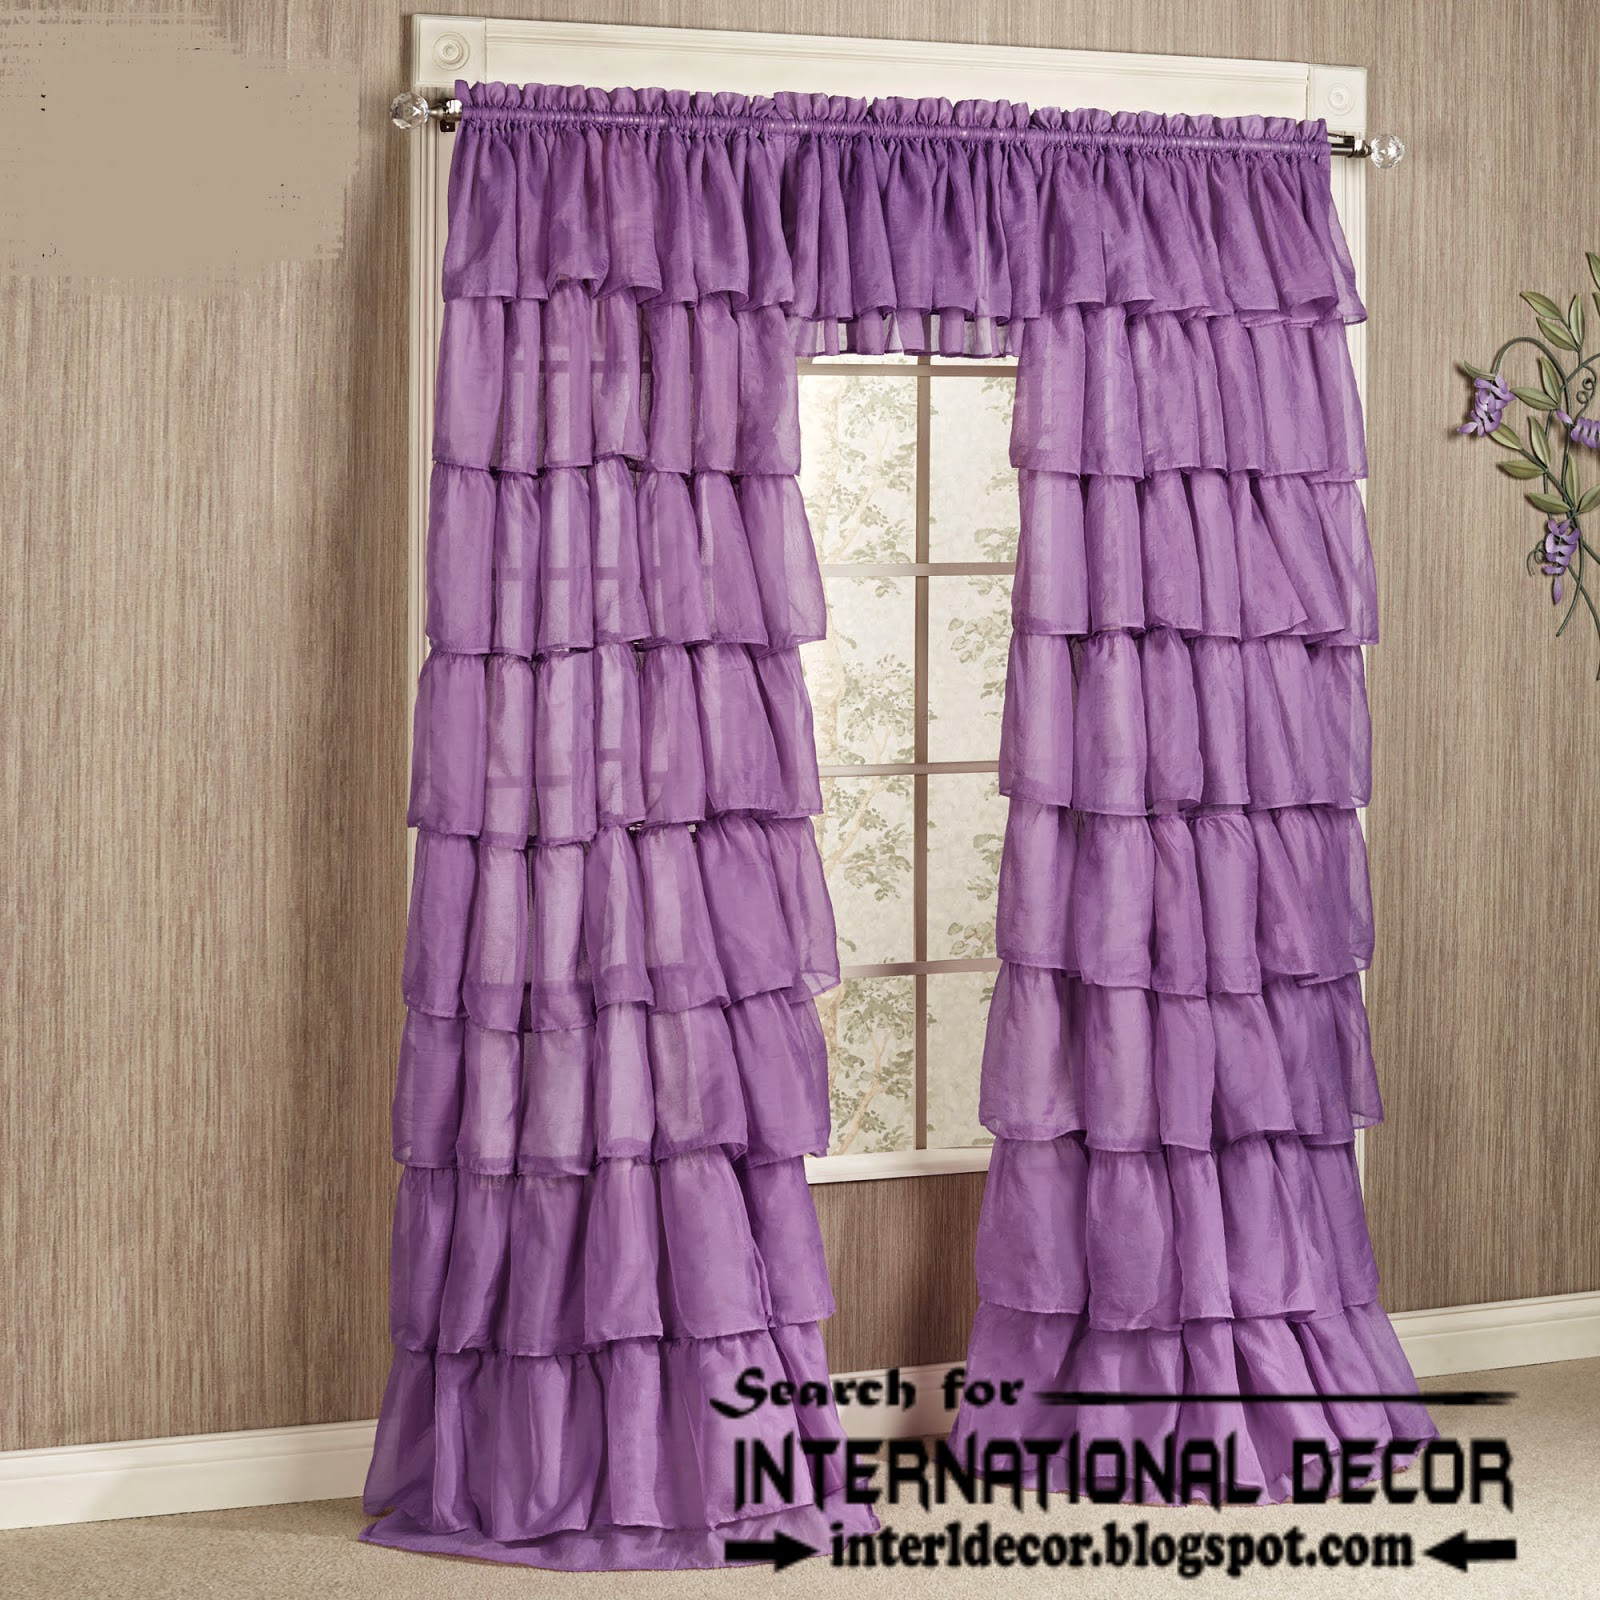 Ruffle Purple Curtains For Windows: